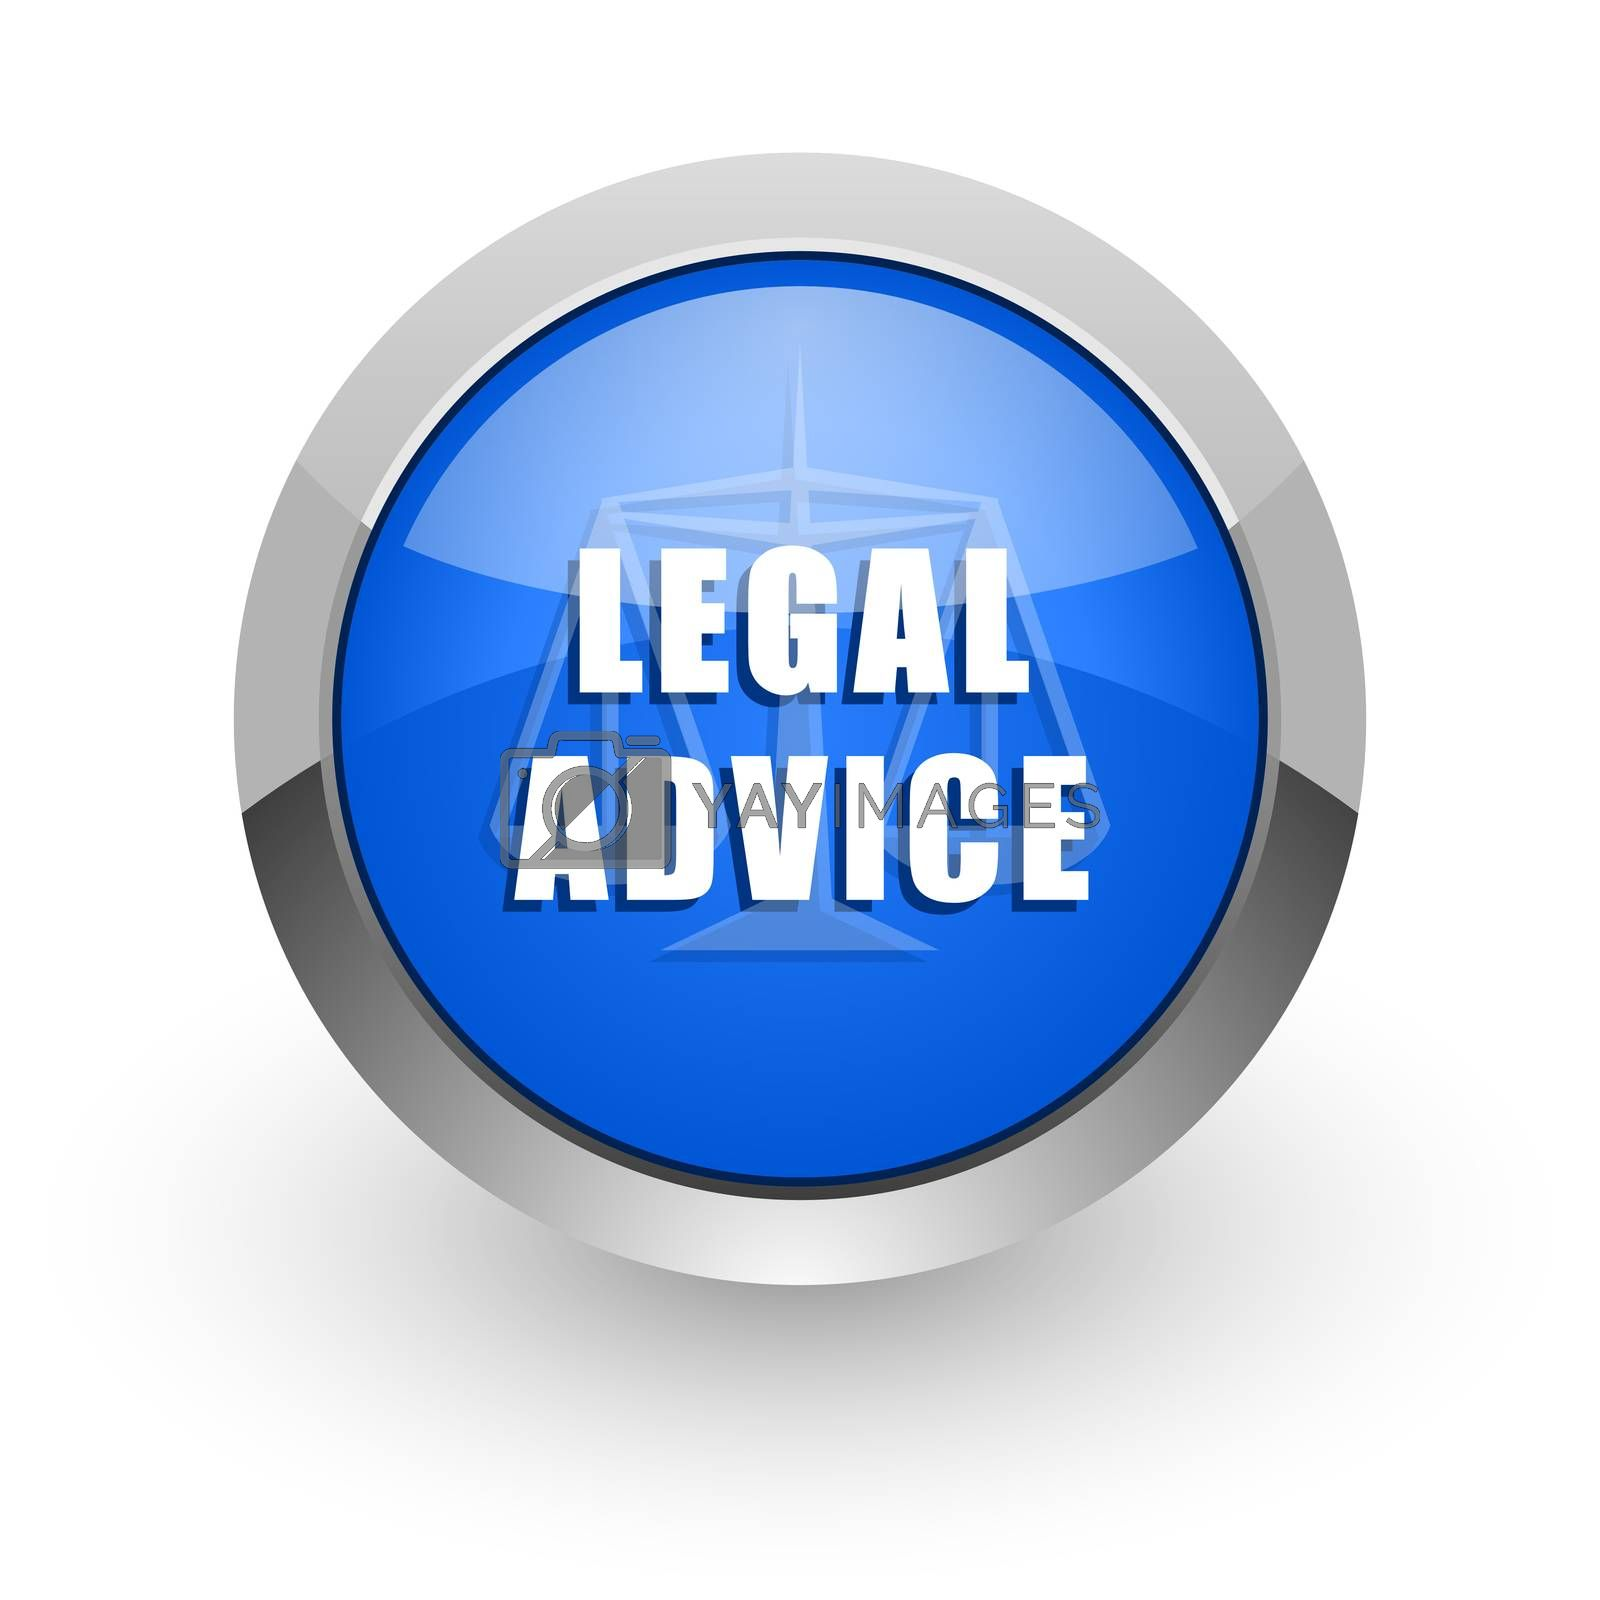 Royalty free image of legal advice blue glossy web icon by alexwhite